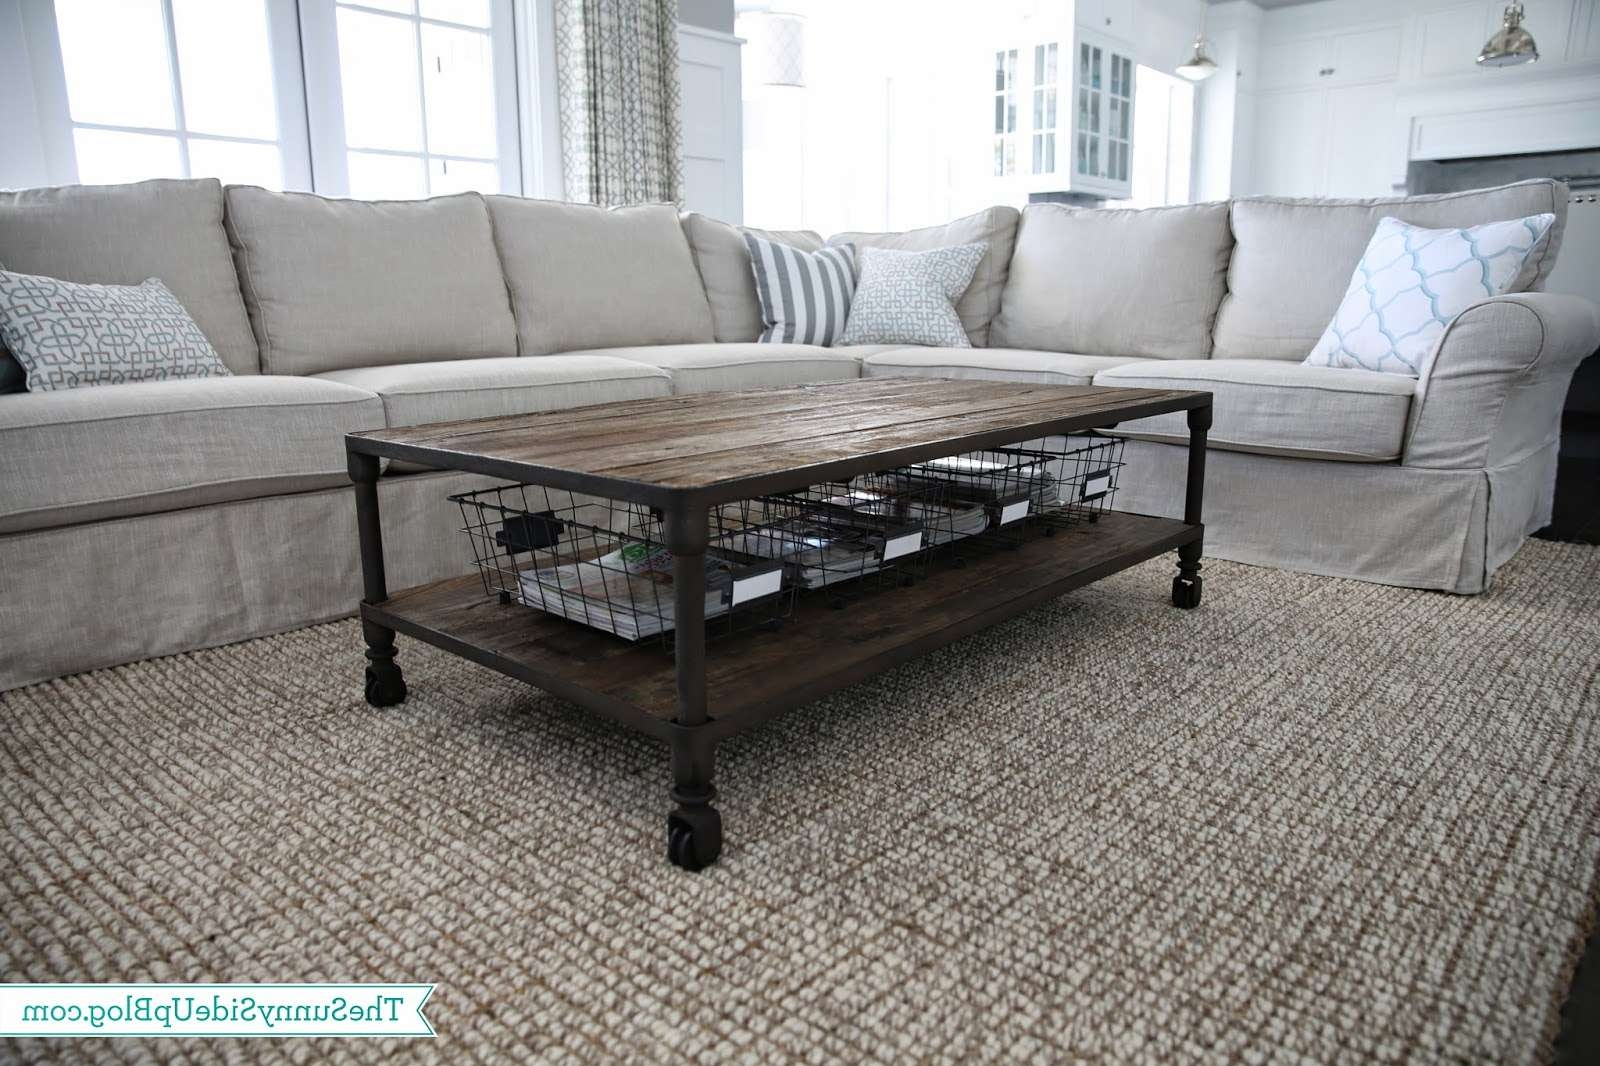 20 Best Collection of Coffee Tables With Basket Storage Underneath